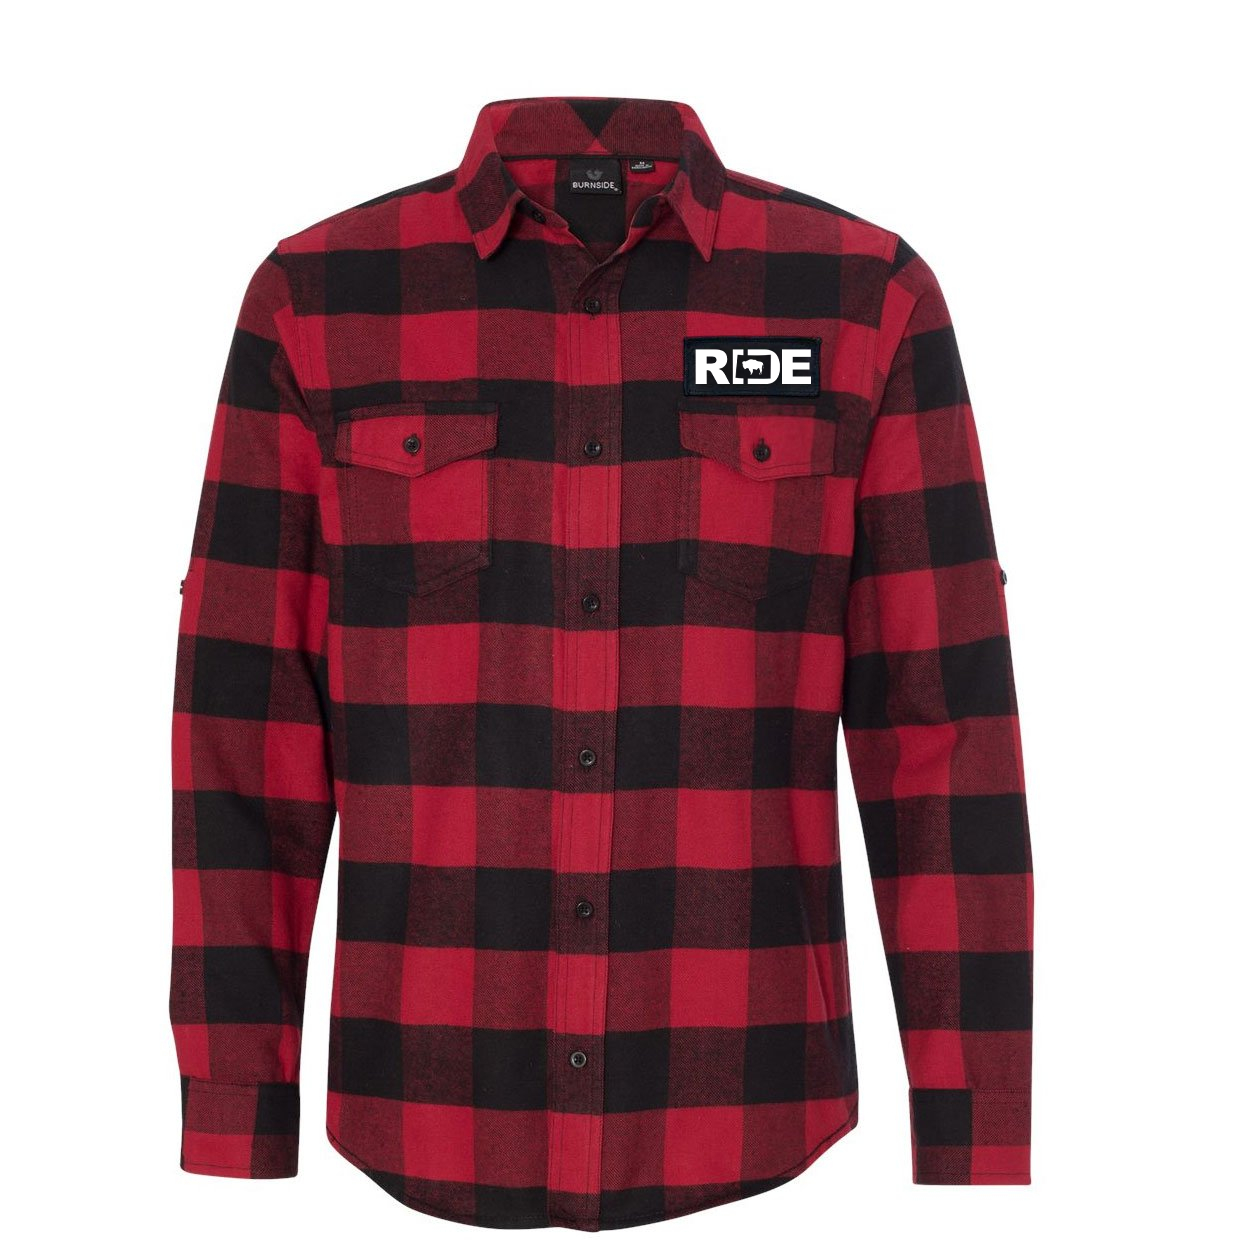 Ride Wyoming Classic Unisex Long Sleeve Woven Patch Flannel Shirt Red/Black Buffalo (White Logo)